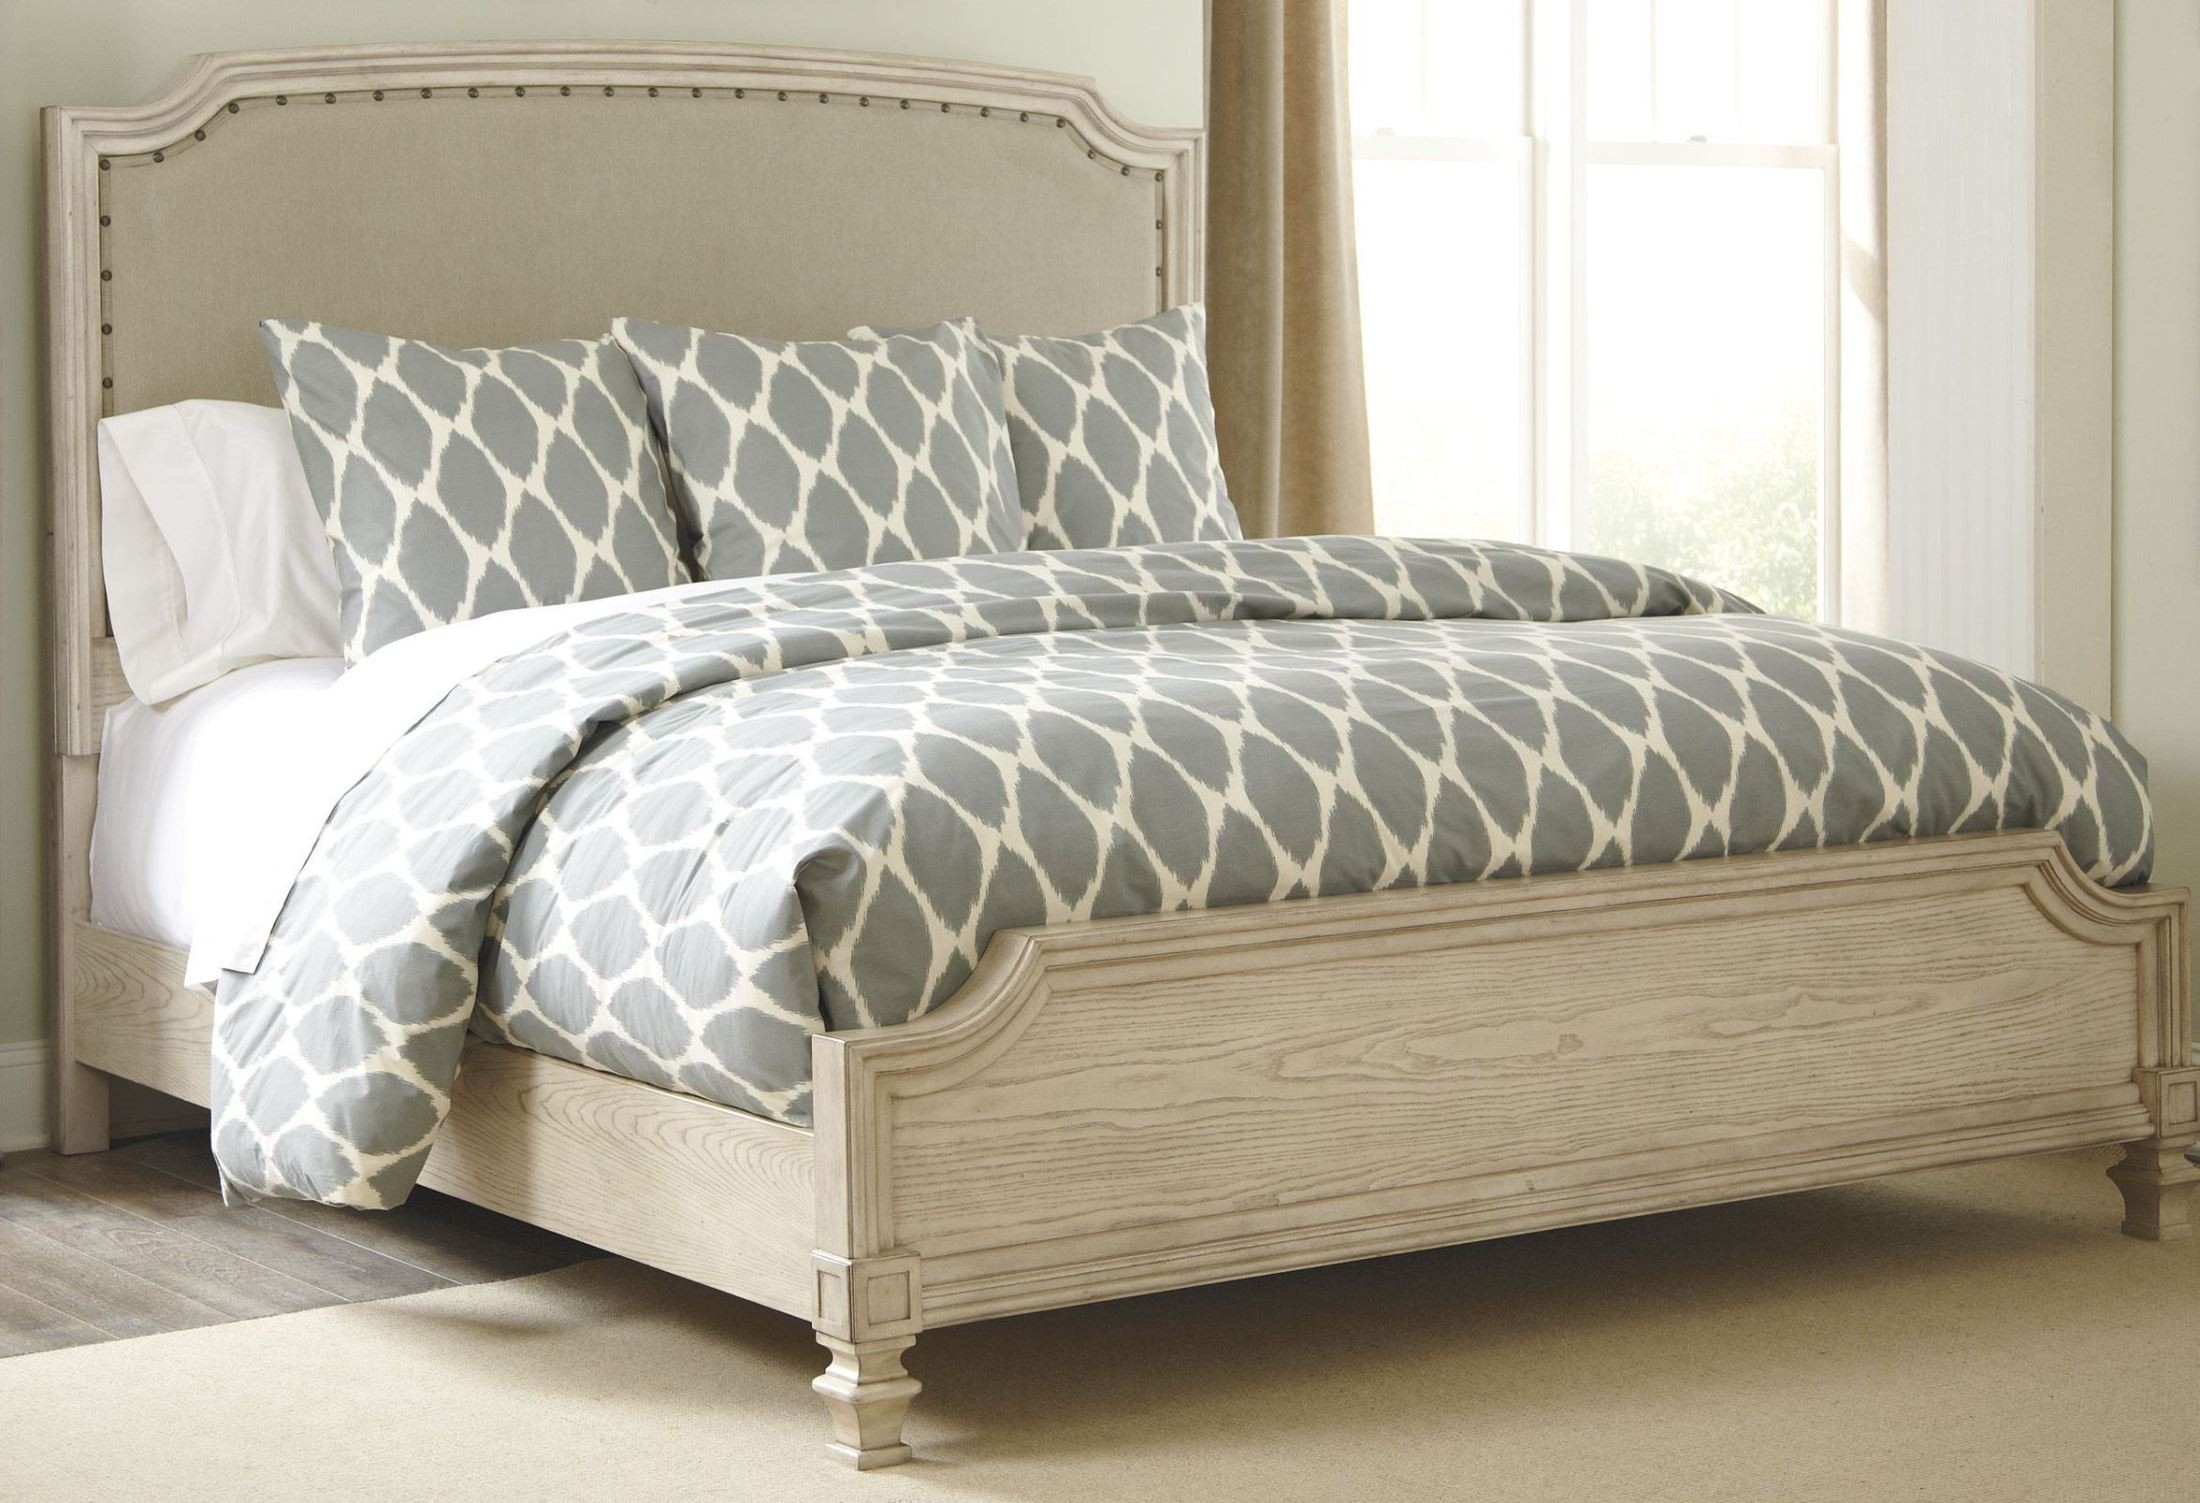 Demarlos Cal King Upholstered Panel Bed From Ashley B693